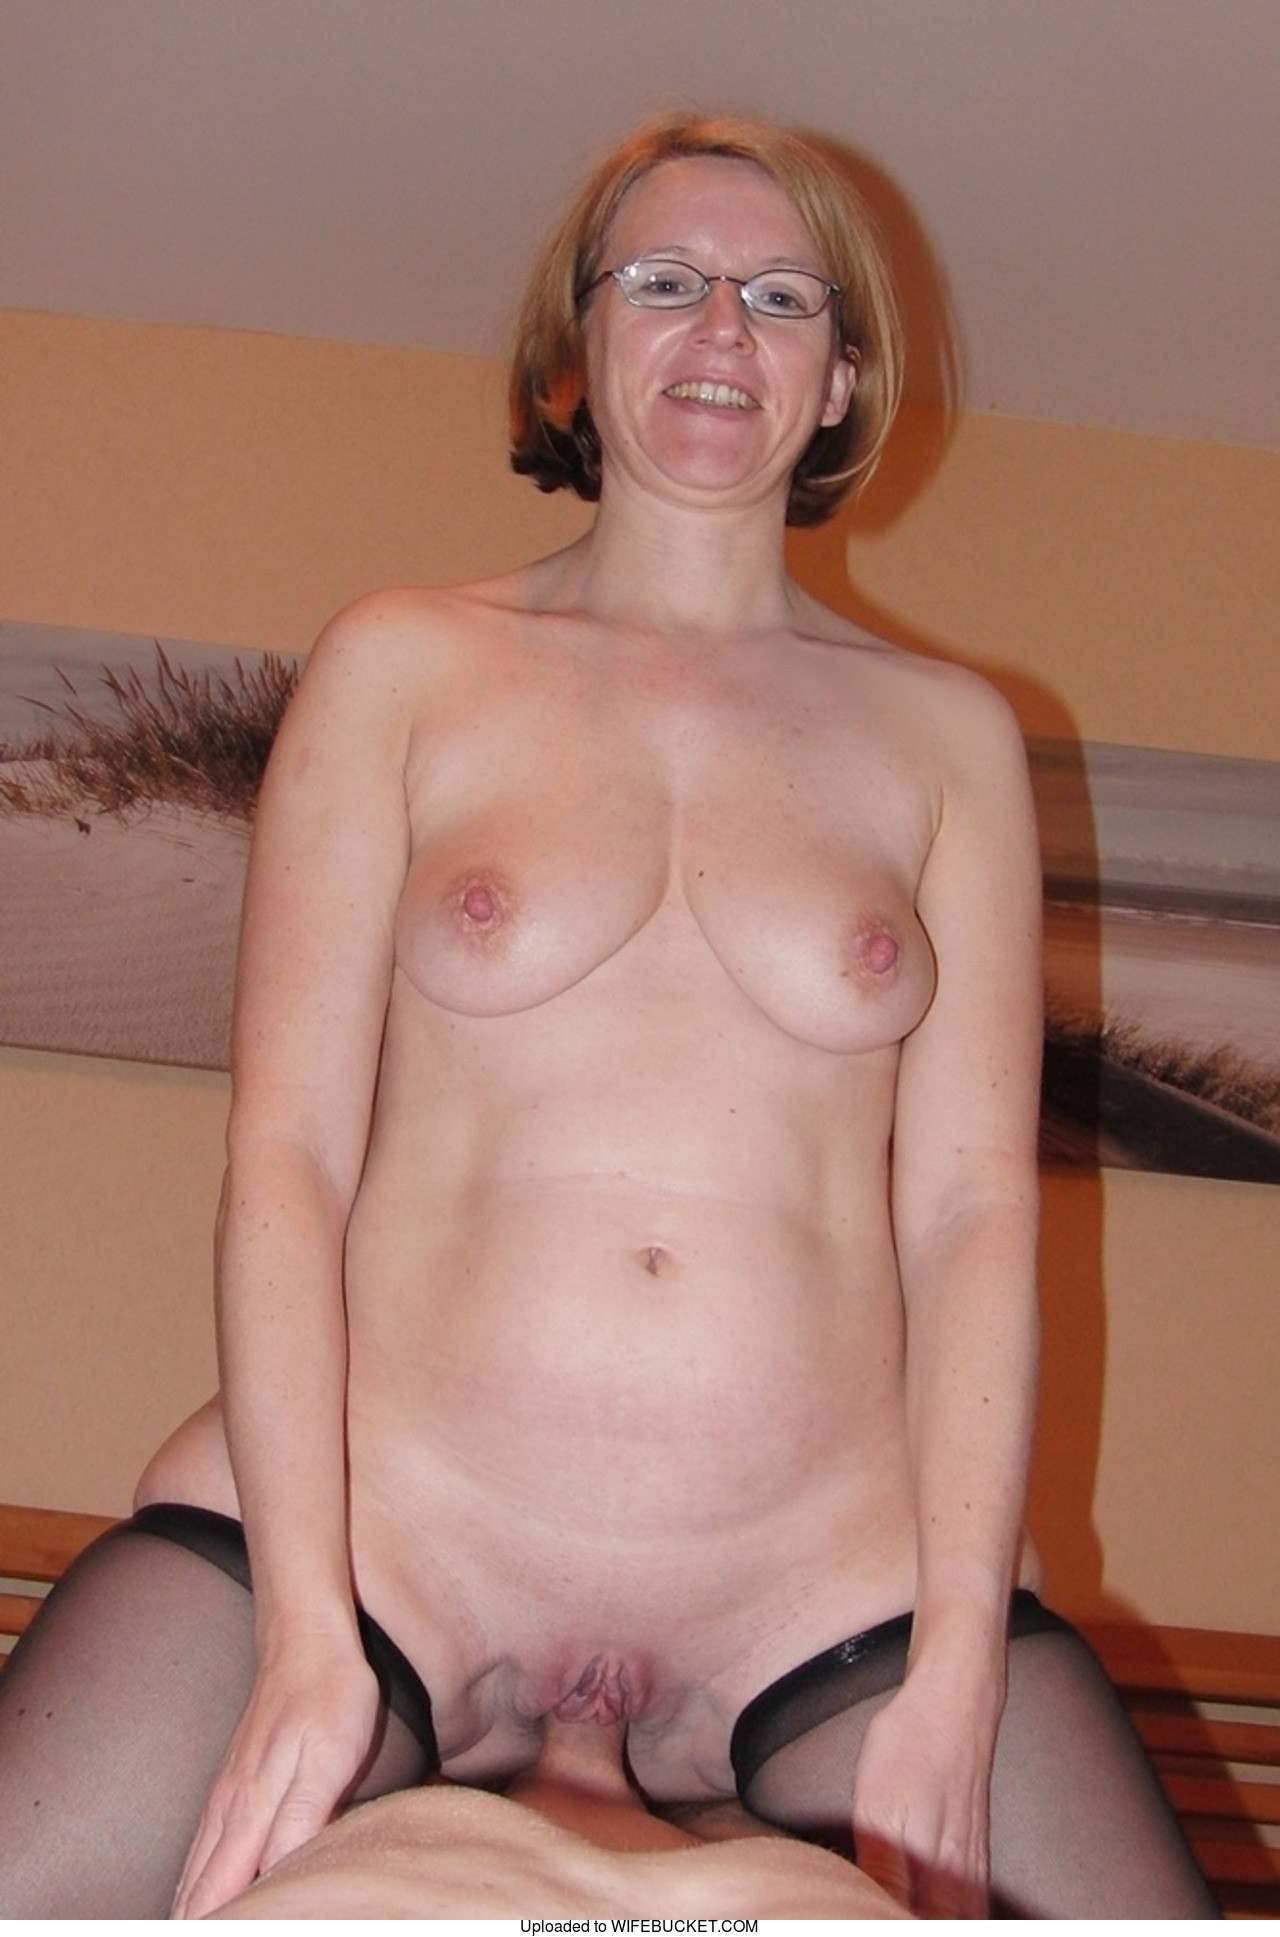 Fucking My Wife Archives  Wifebucket  Offical Milf Blog-3522